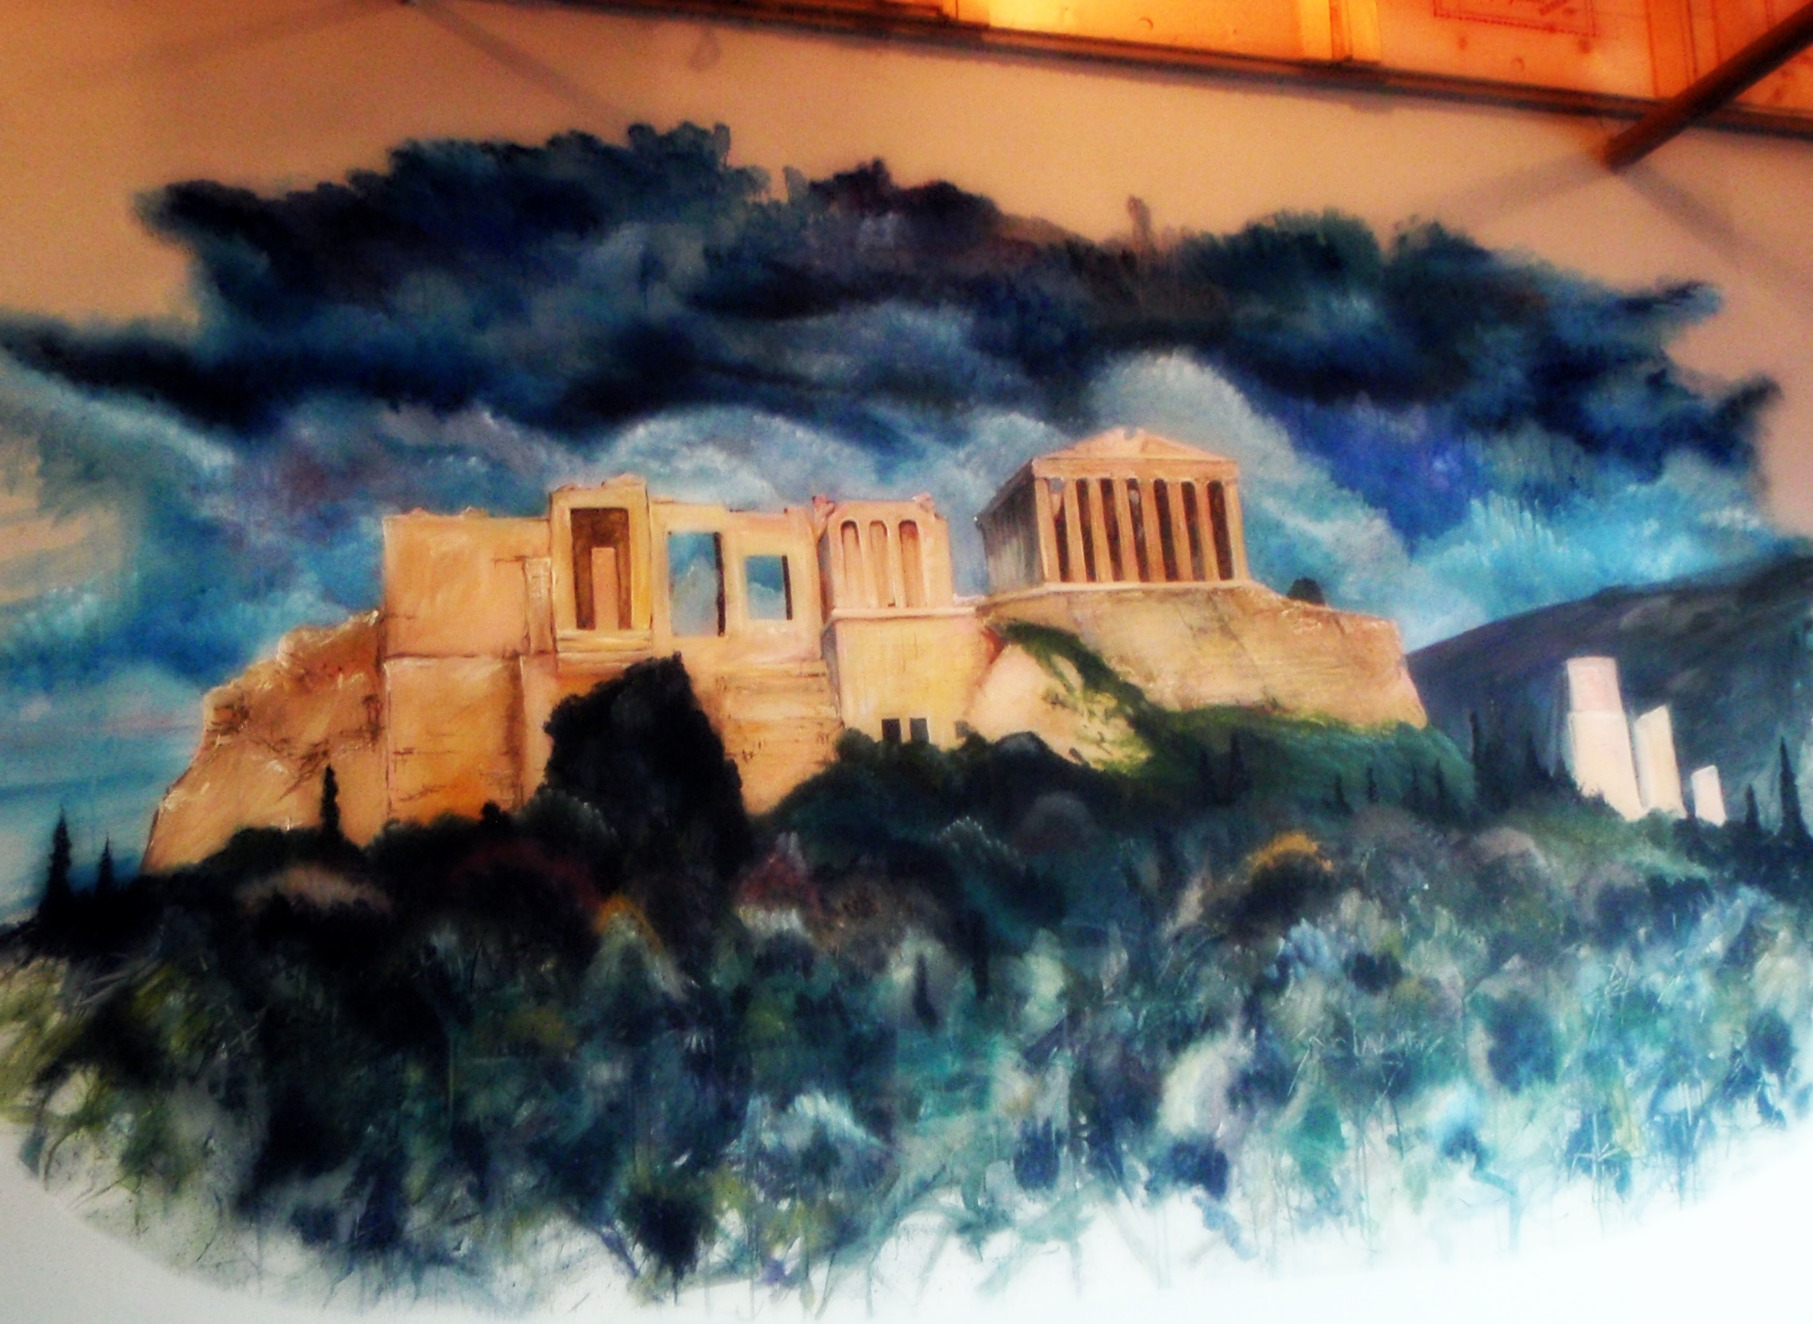 More Awesomeness . . . The Parthenon, Revisited!